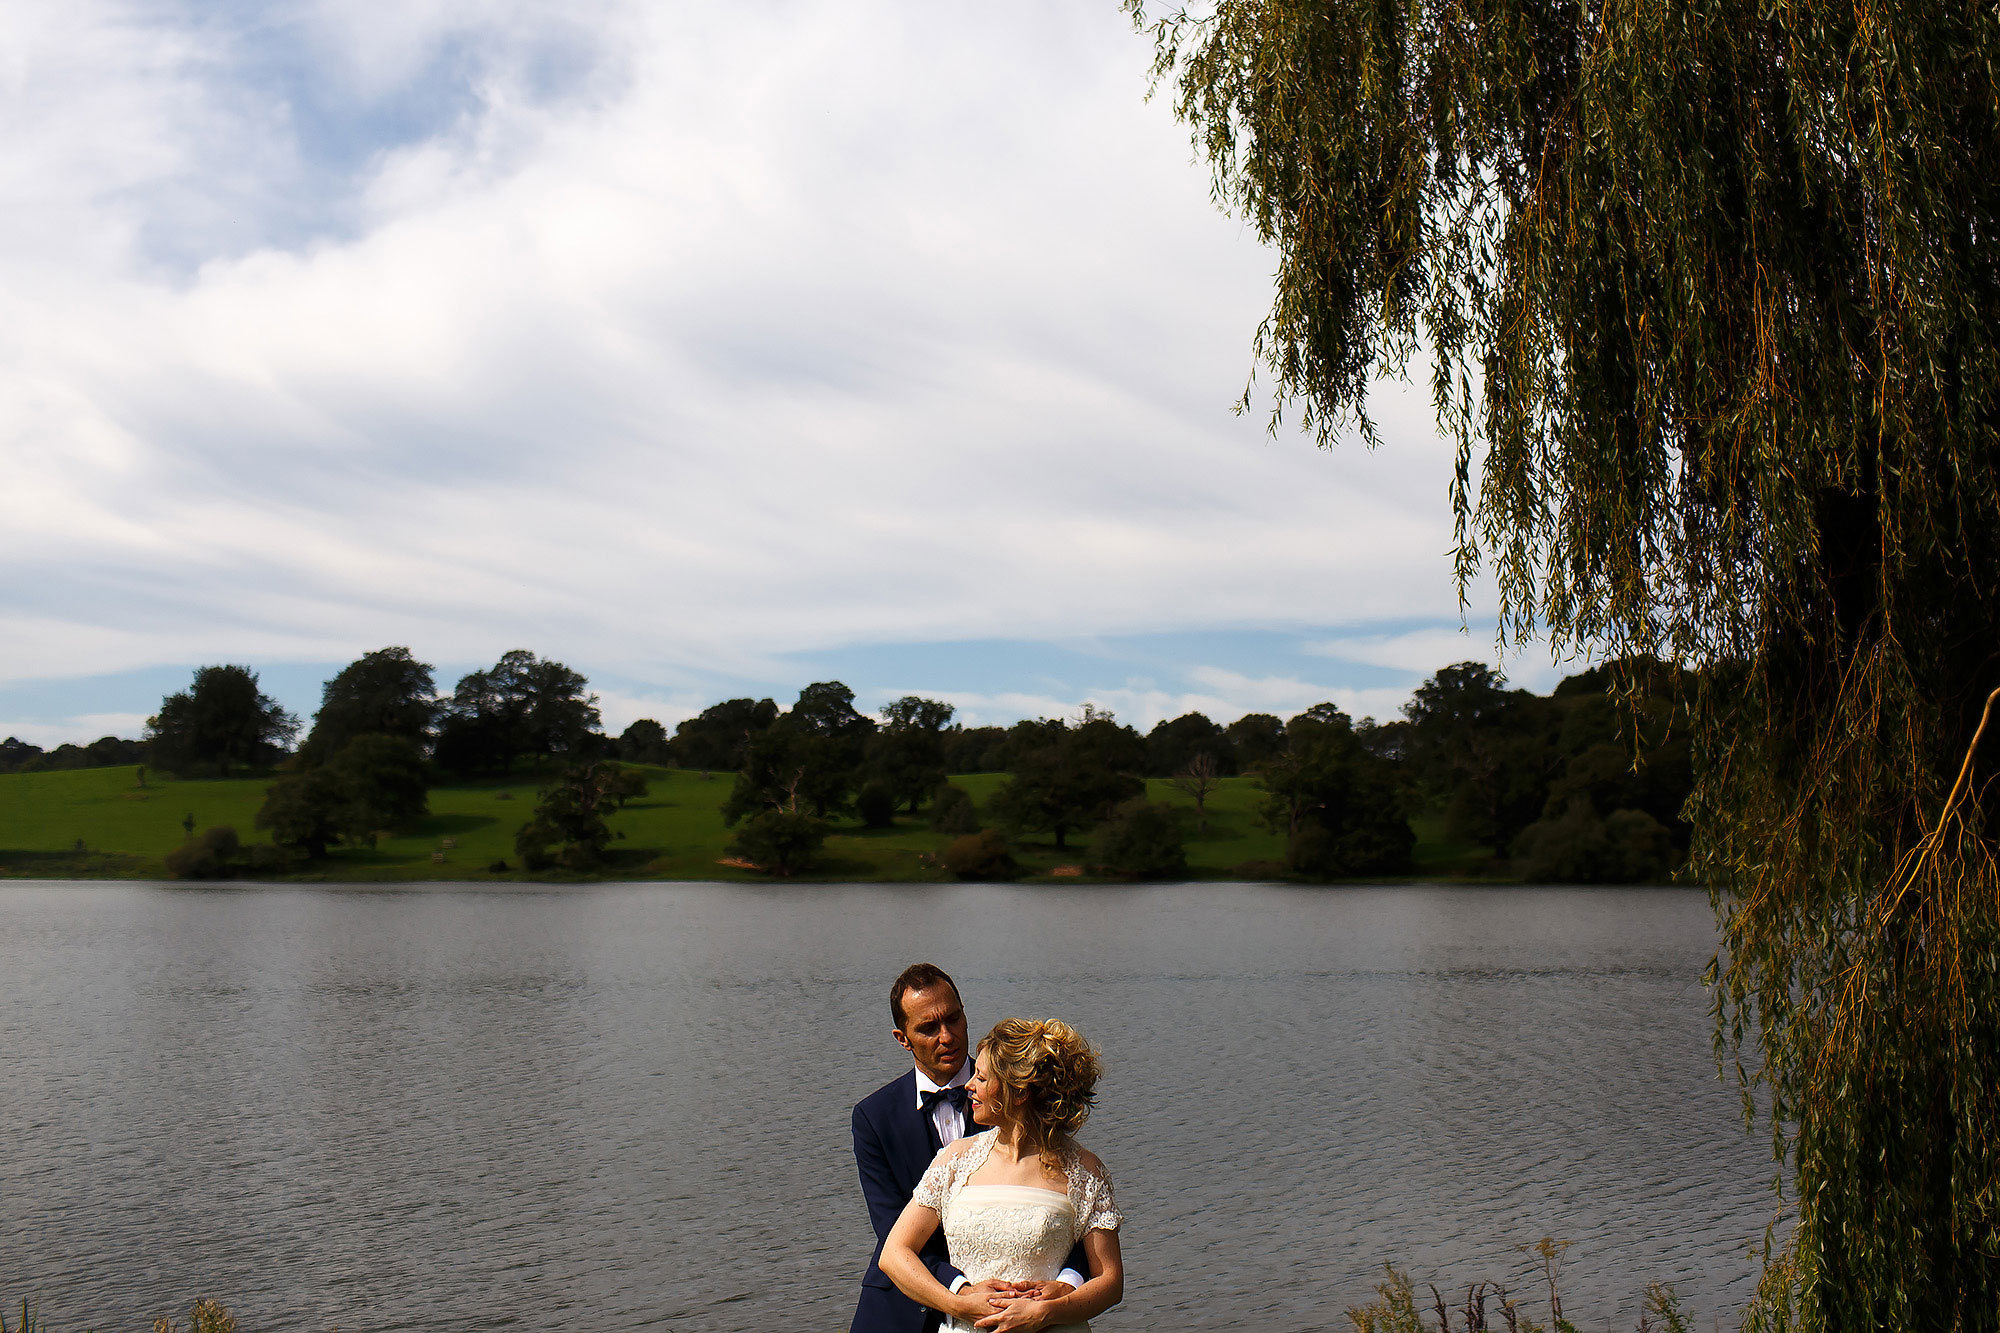 Bride and groom in each others arms on the lakeside at Combermere Abbey